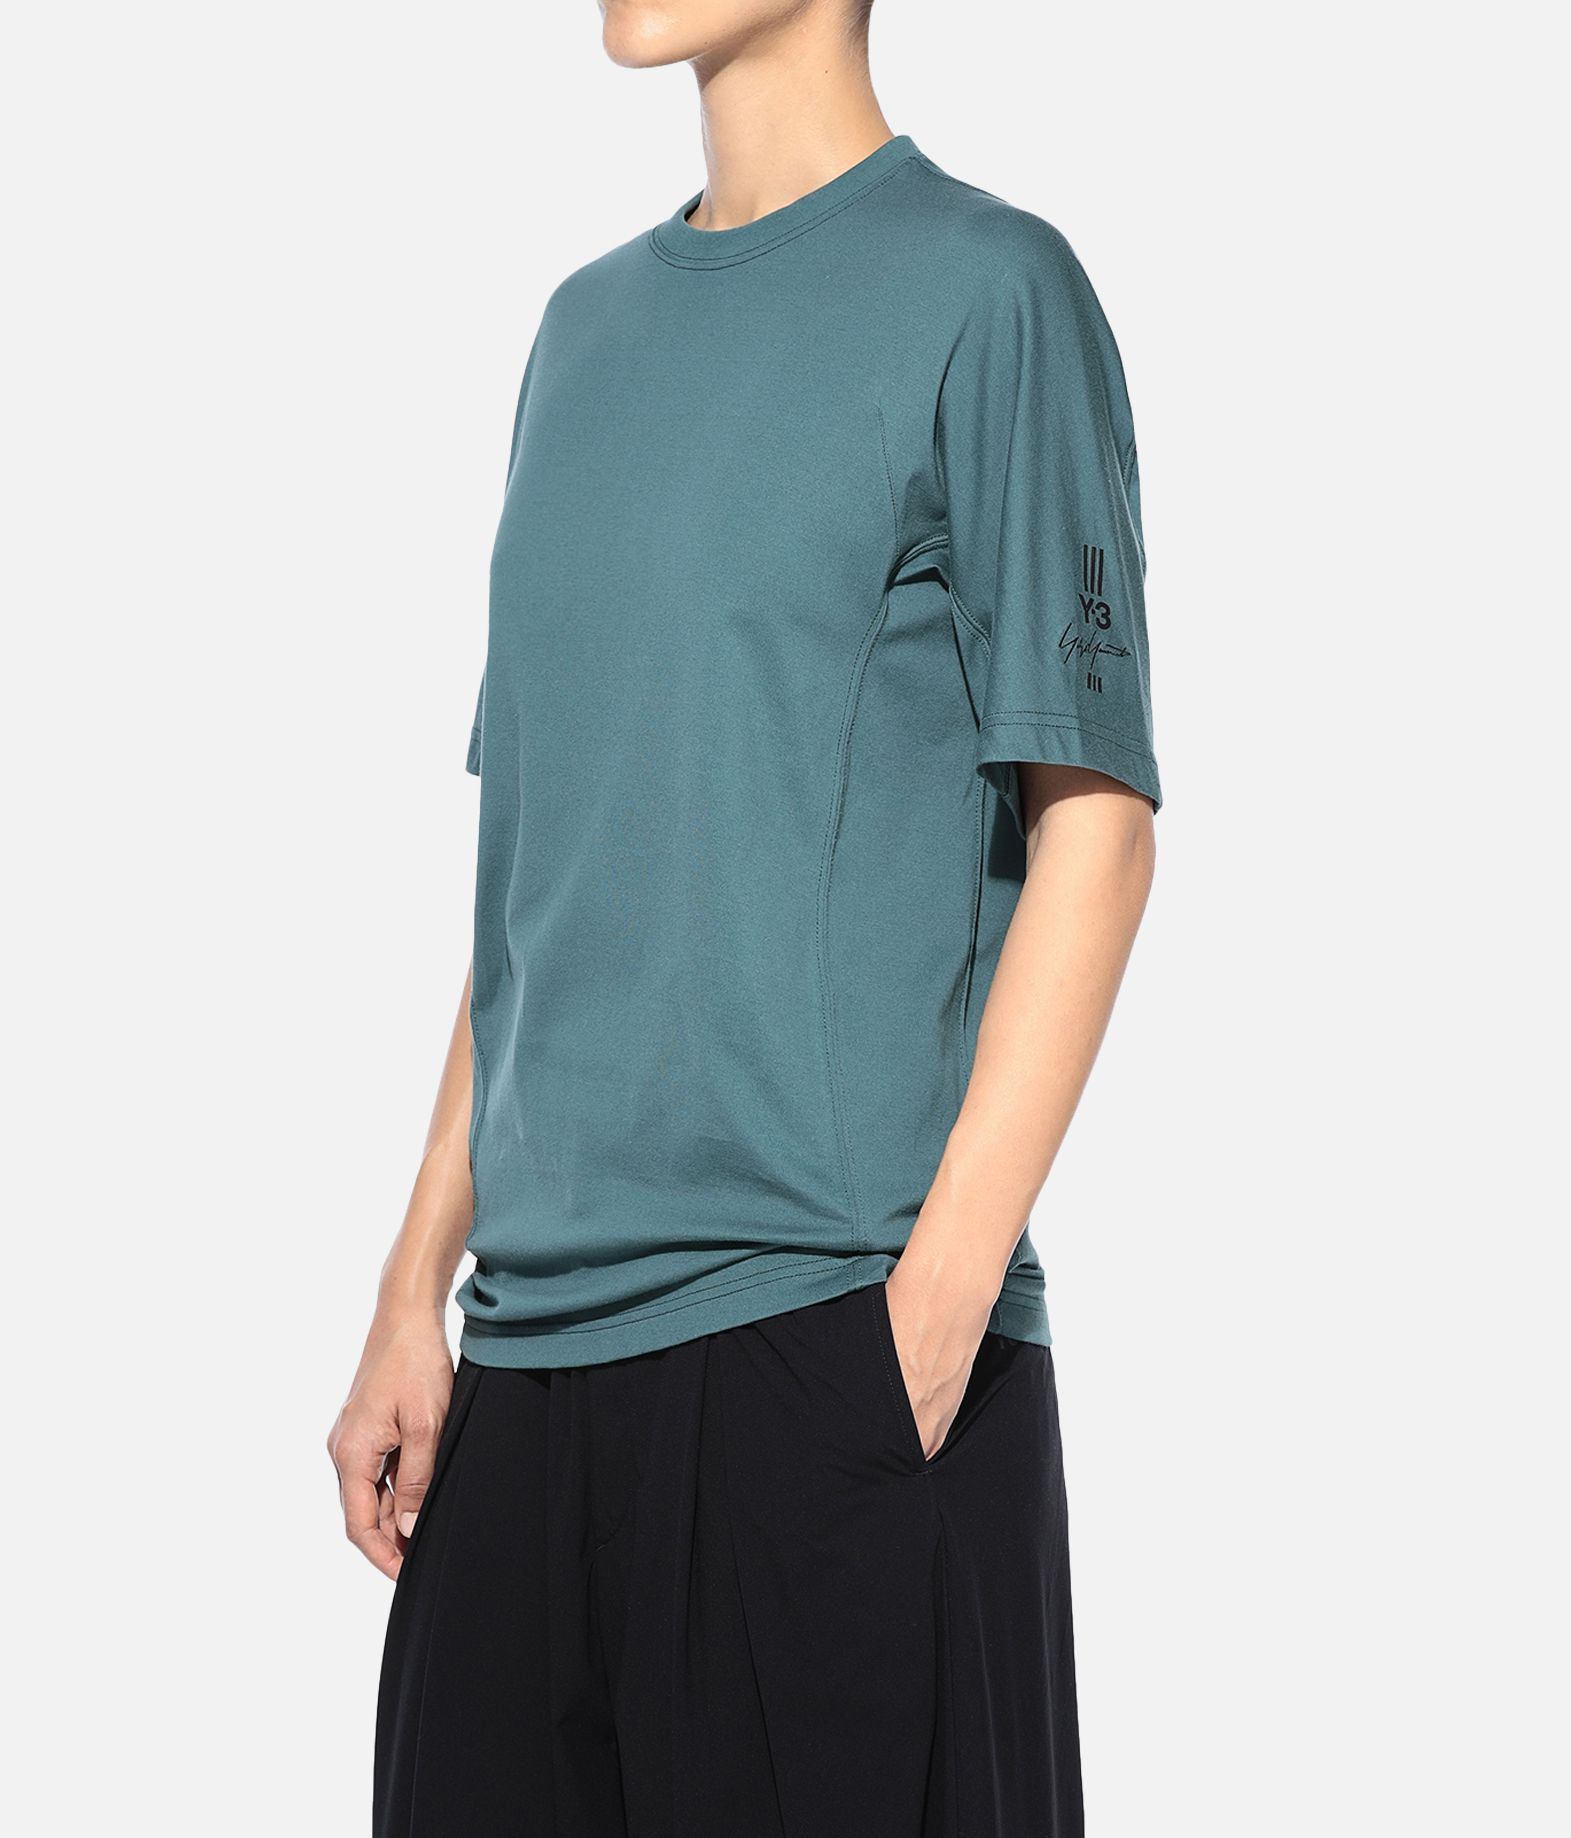 Y-3 Y-3 New Classic Tee  Short sleeve t-shirt Woman e